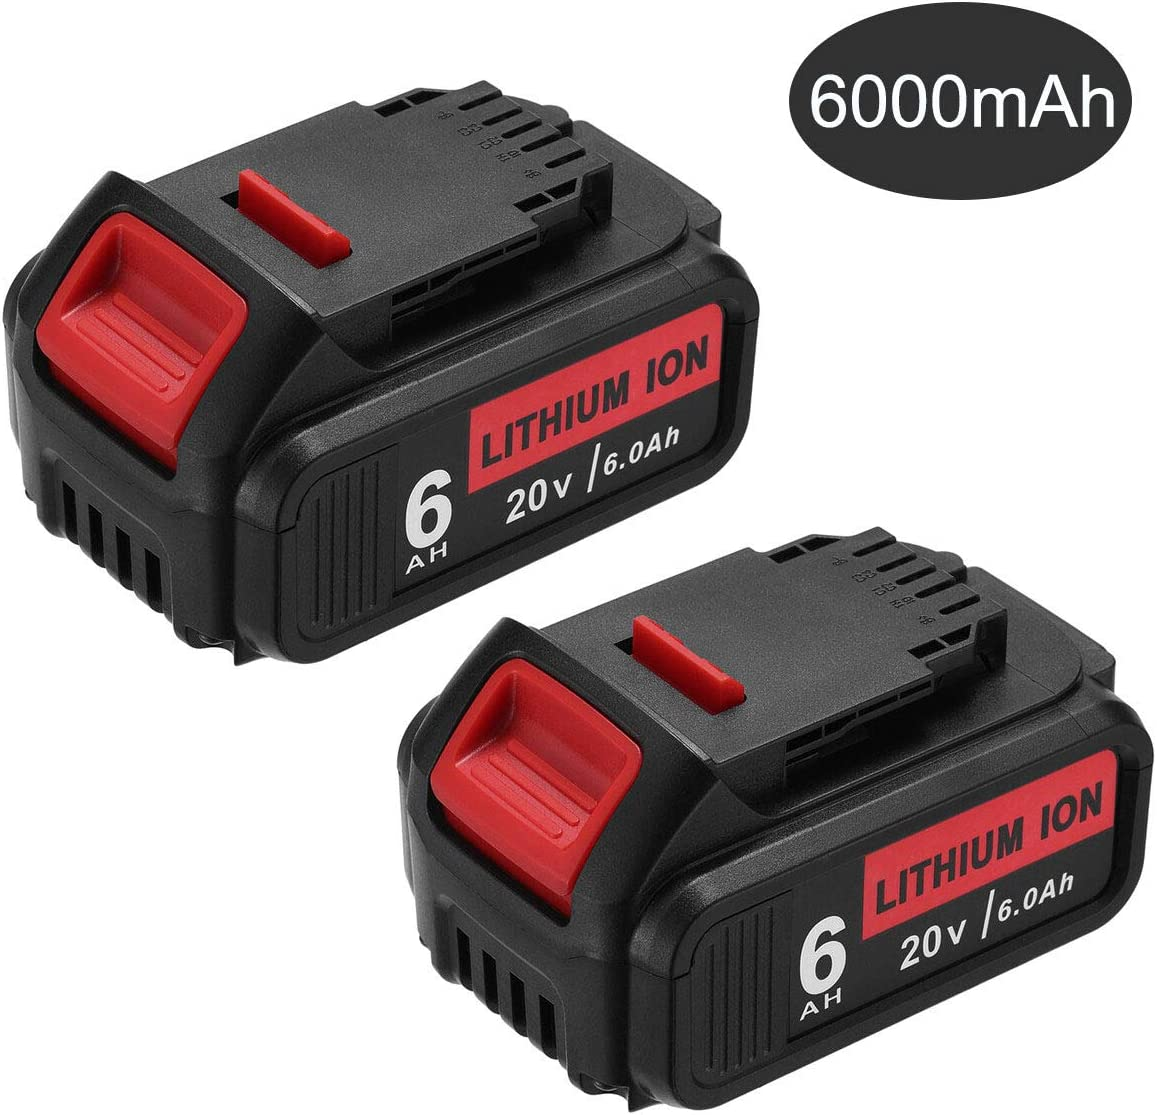 Dutyone 2Pack 6000mAh Battery Replacement for Dewalt 20V Max DCB204 DCB205 DCB206 DCB205-2 DCB200 DCB180 DCB184 DCD985B DCD771C2 DCS355D1 DCD790B Lithium ion Batteries